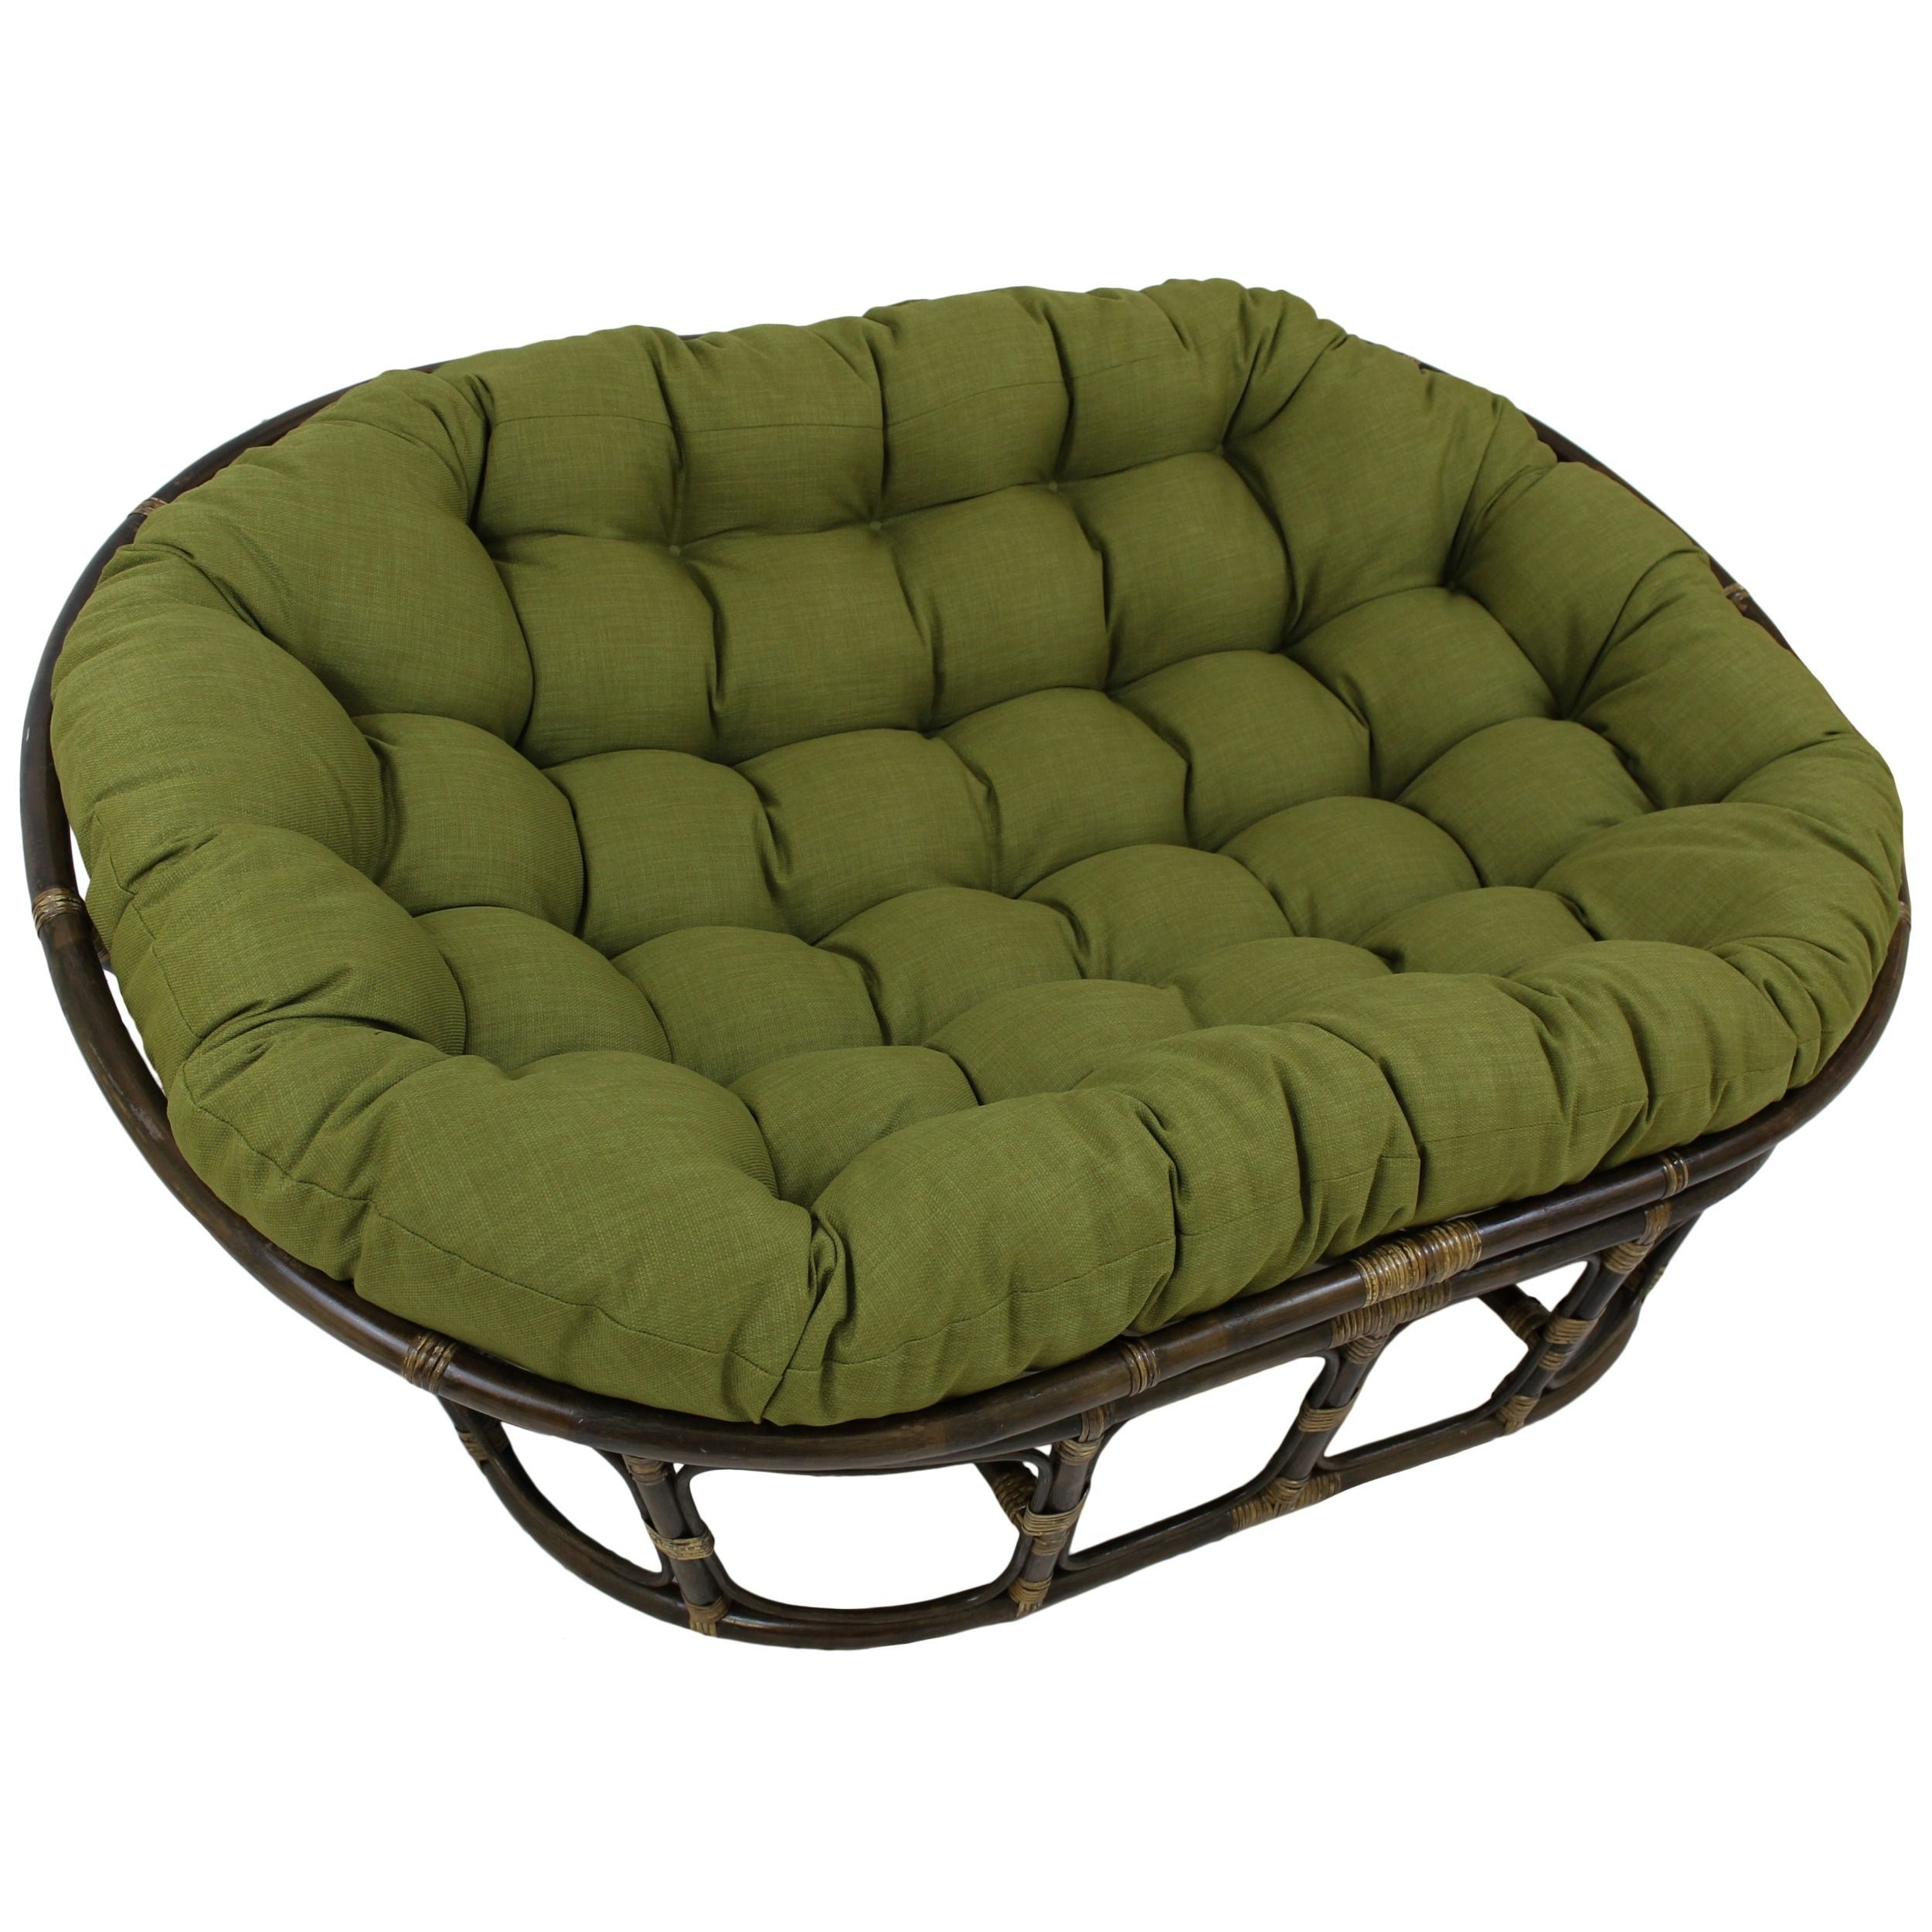 consuladoargentinomilano double chairs e lounge outdoor papasan fresh chair pier new of cushion